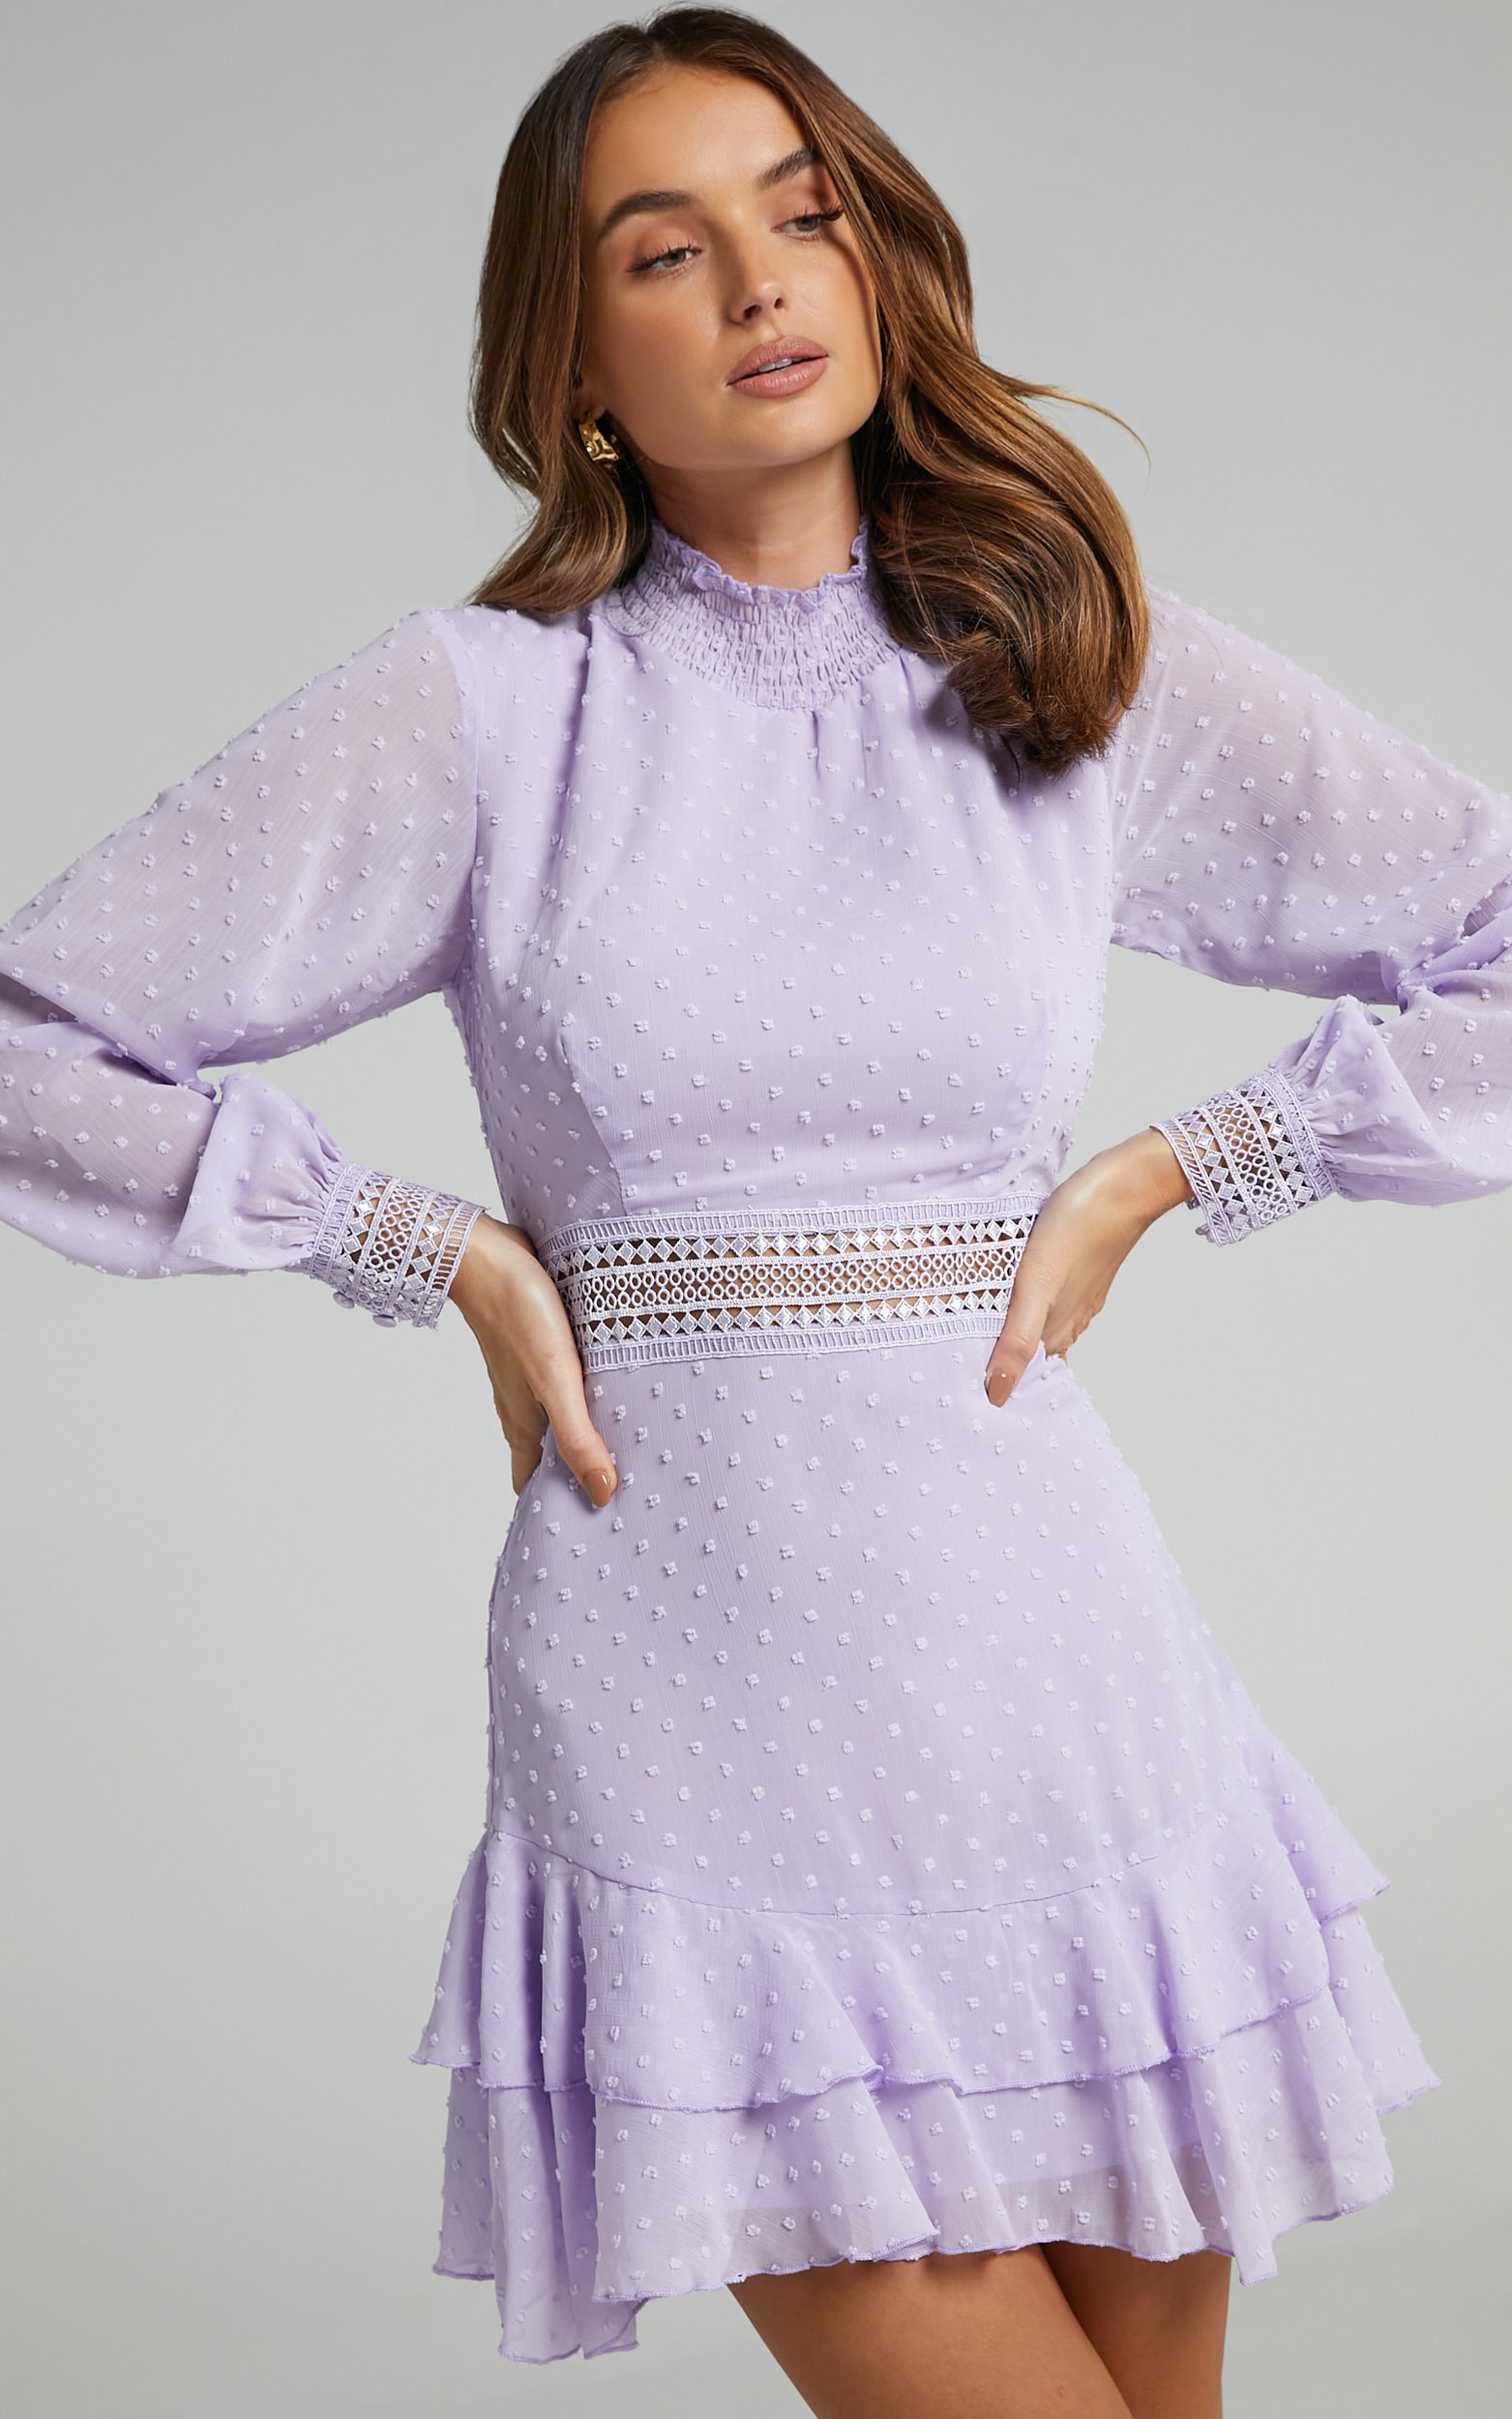 Are You Gonna Kiss Me Dress in Lilac - 04, PRP3, hi-res image number null